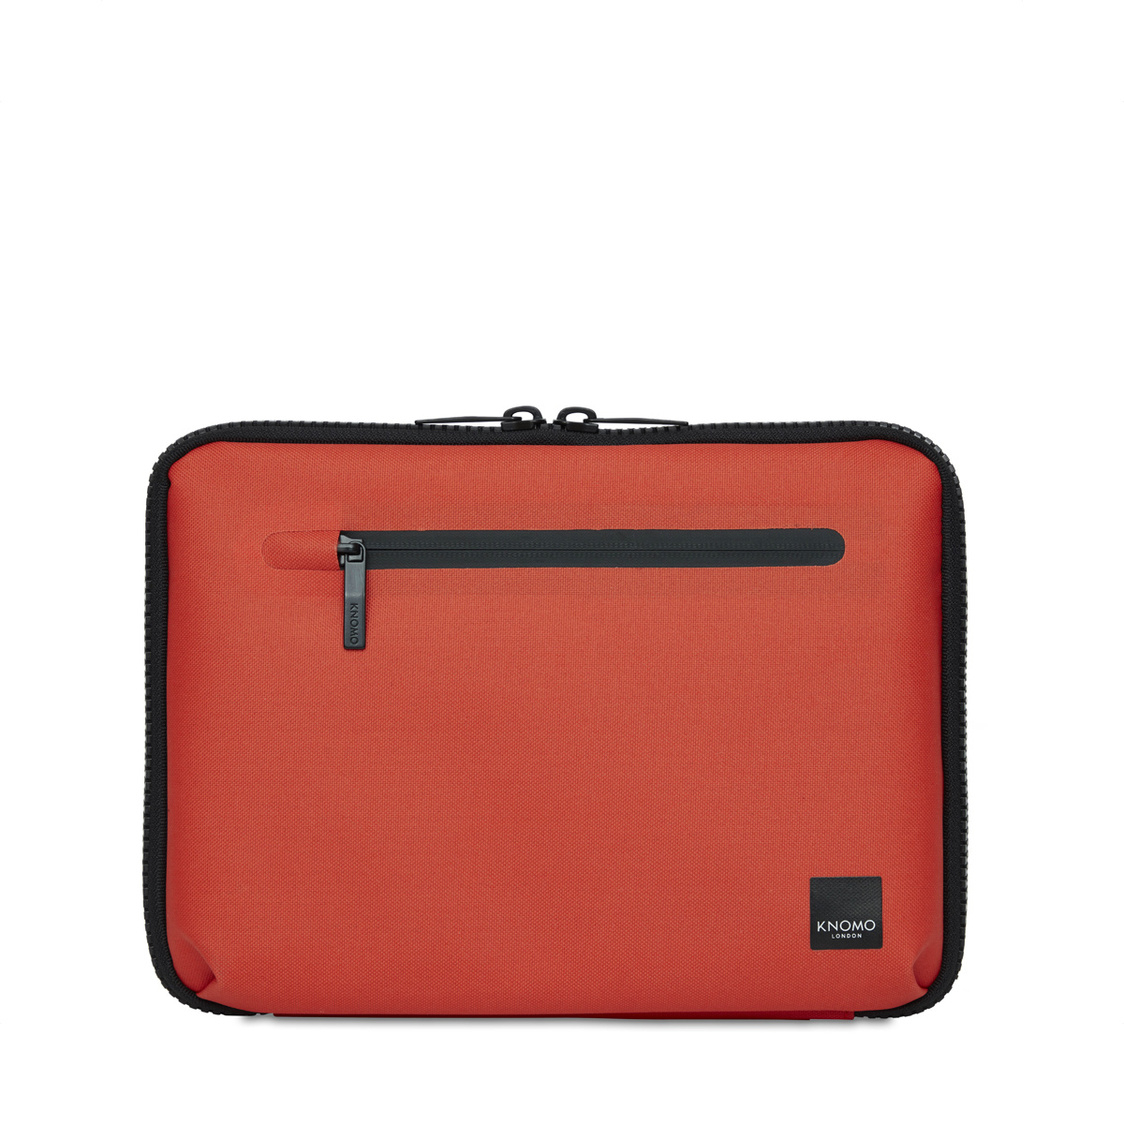 Thames Knomad Tech Organiser105 Orange